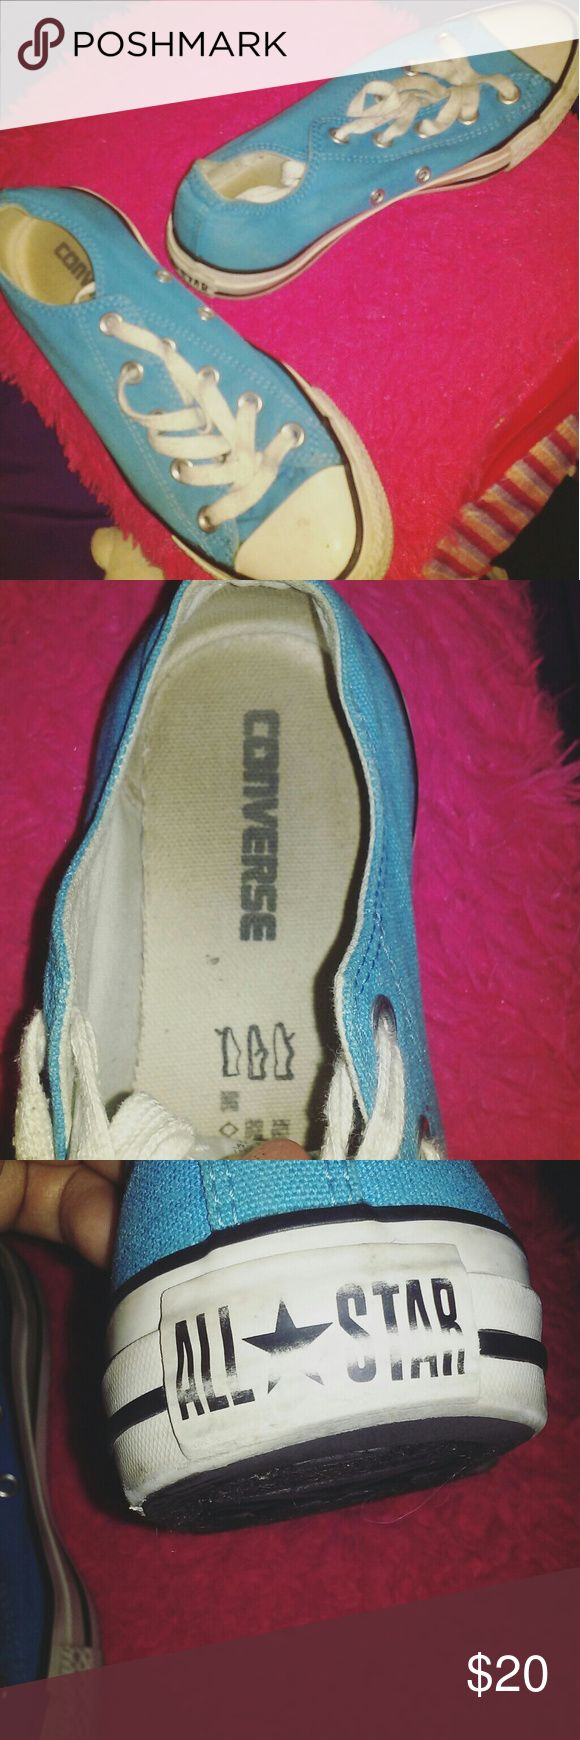 ALL STAR CONVERSE WORN A couple times  Dirty alittle inside and out havent cleaned them but if brought will replace shoelaces.  Still has alot of life left in them. Free gift included!   Color (Baby blue)  TRUE TO SIZE  WOMENS 6 MENS 4 Converse Shoes Sneakers